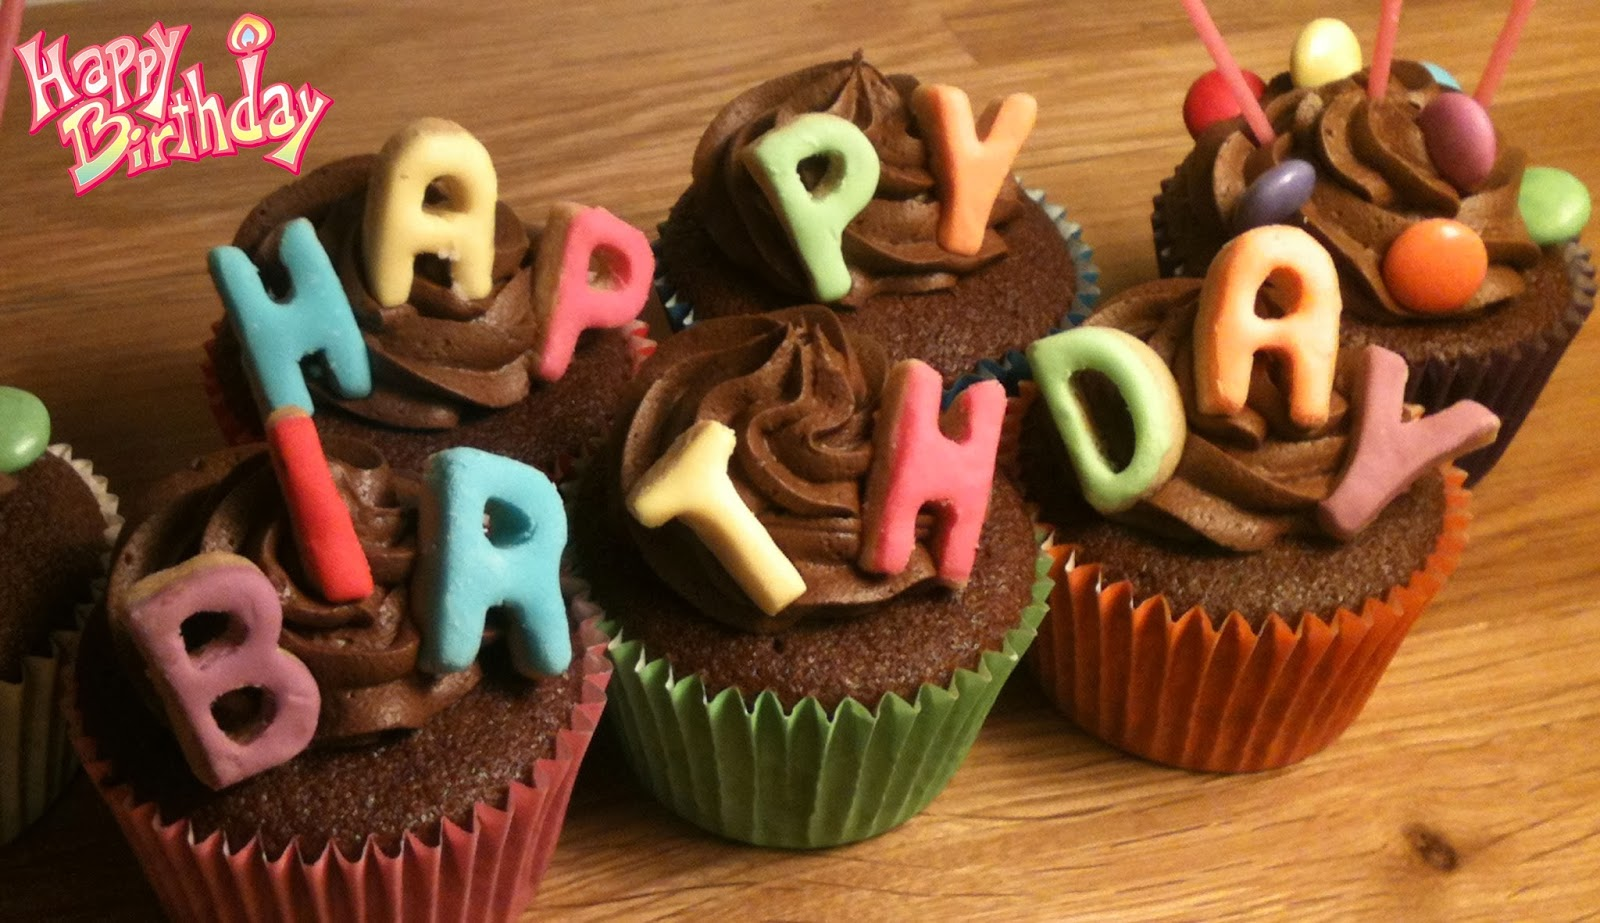 Happy-Birthday-Cup-Cake-Image-HD-Wide